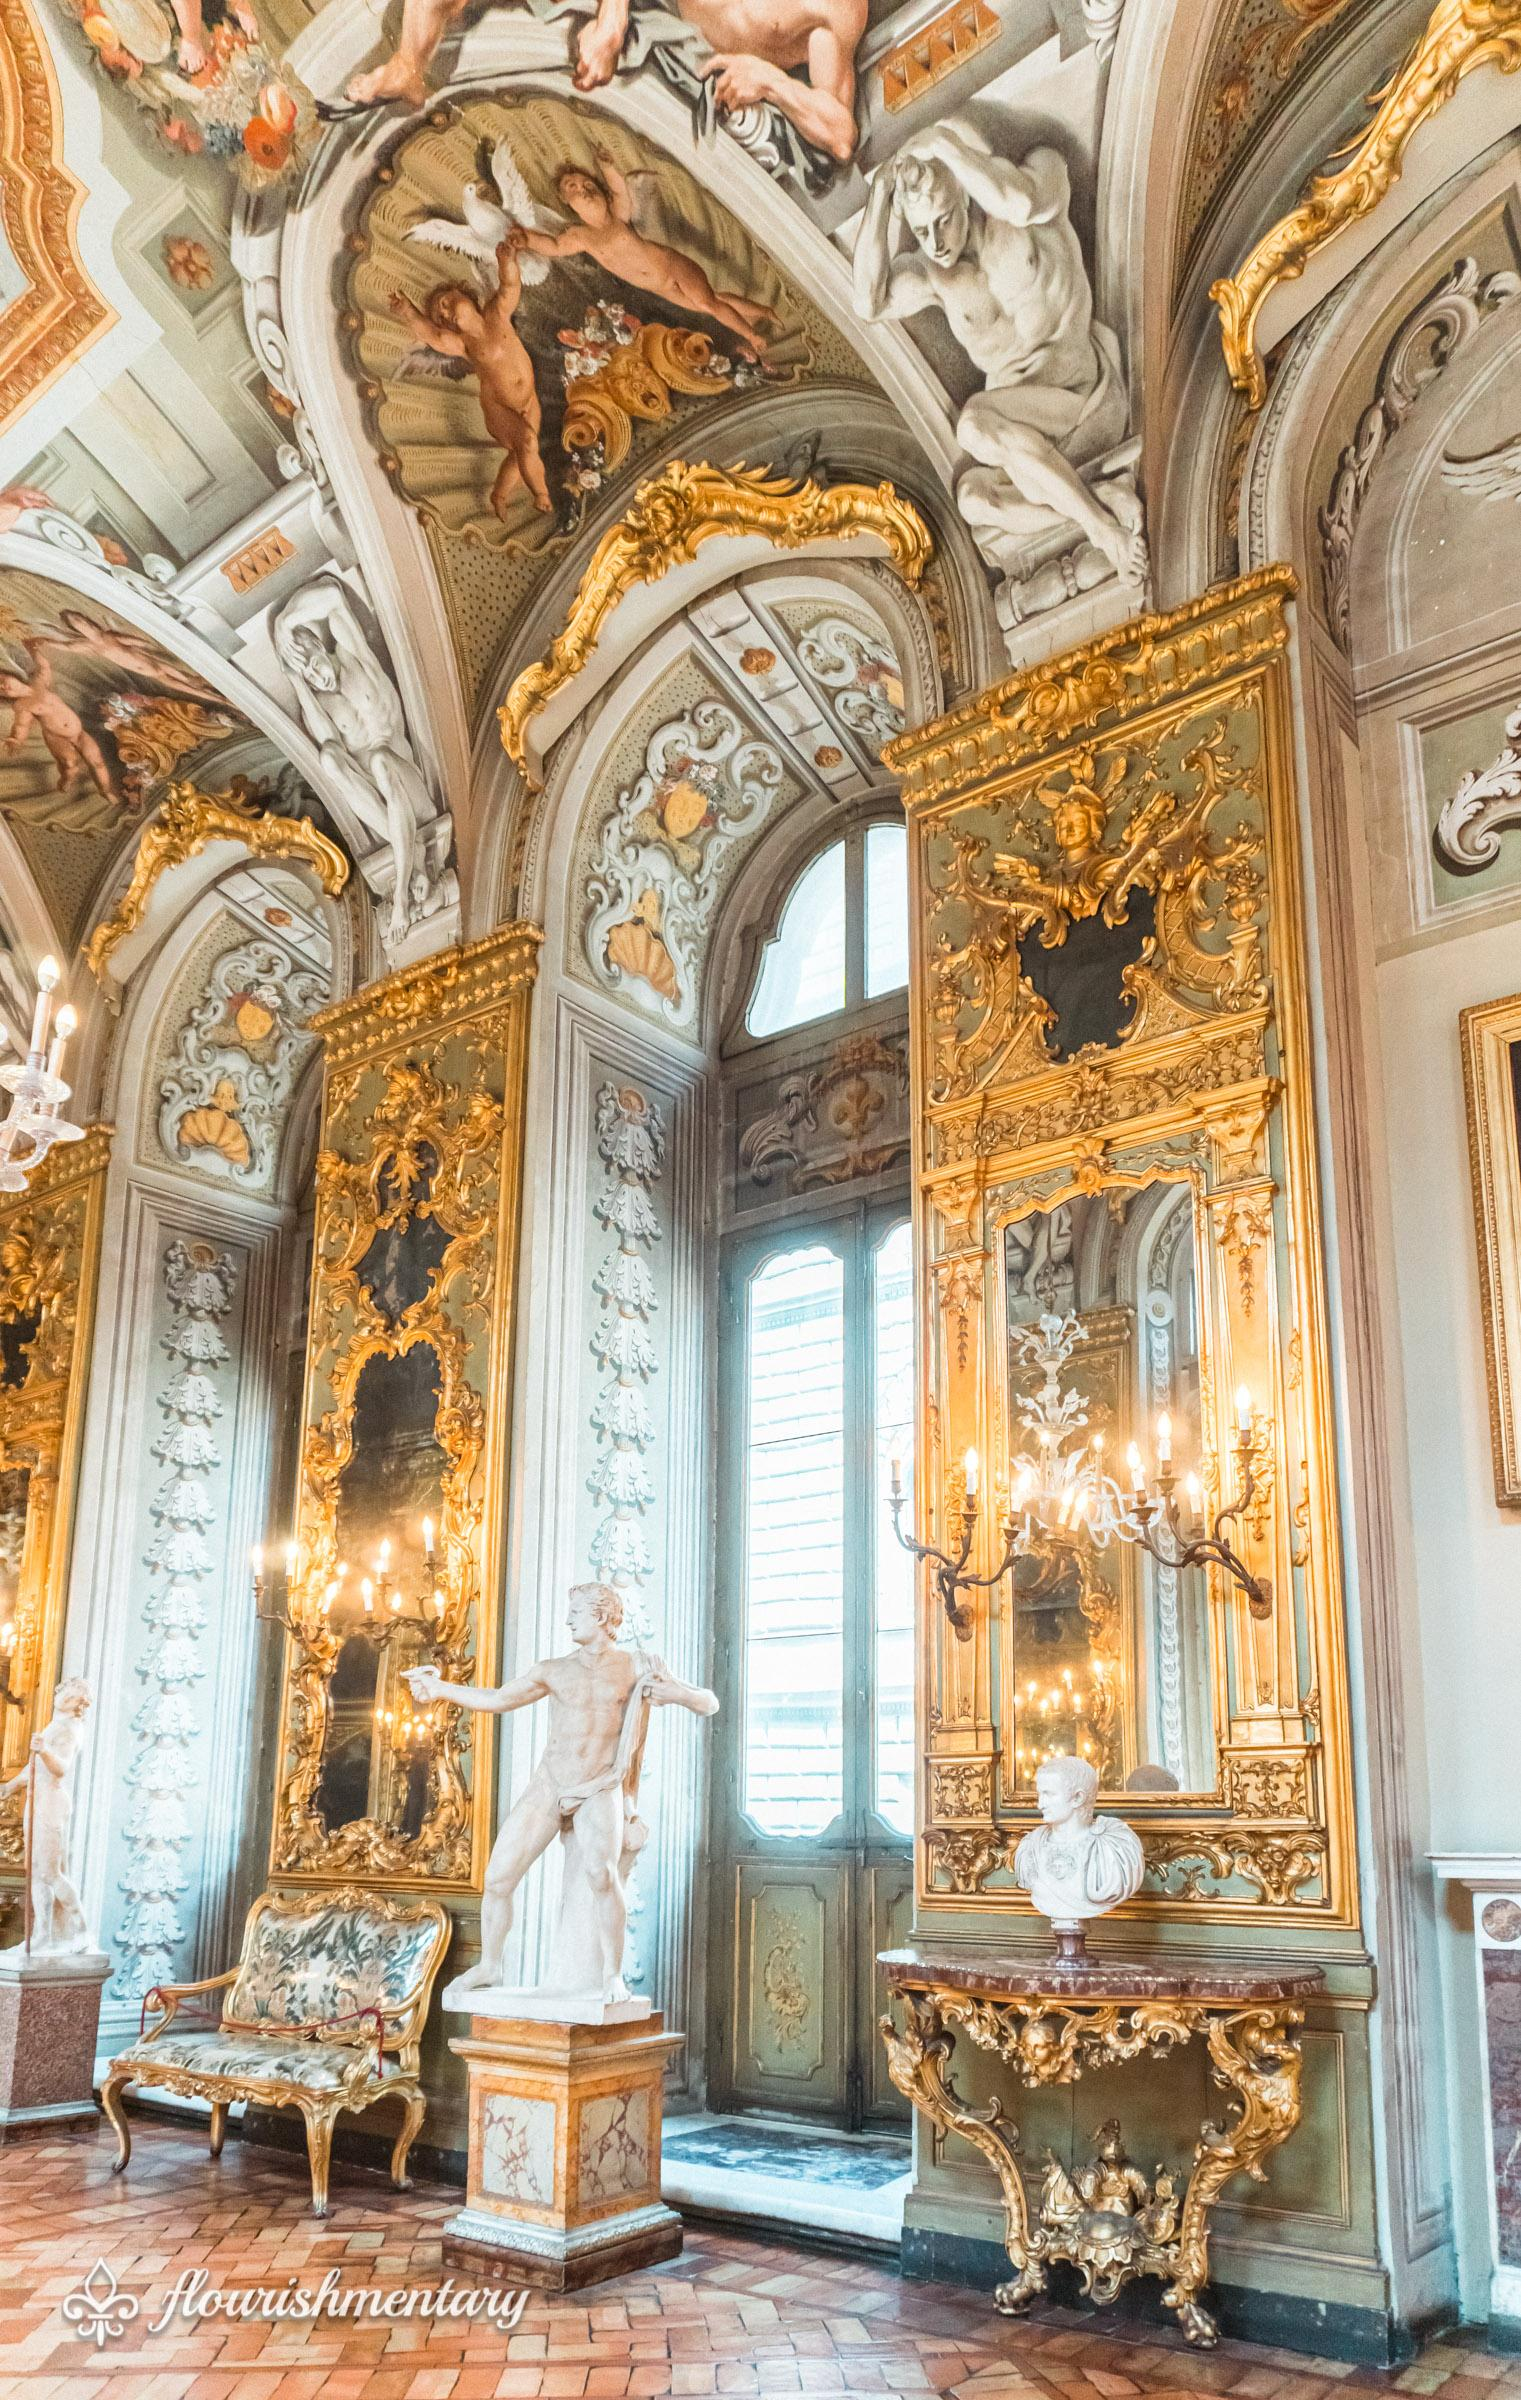 Galleria Doria Pamphilj hall of mirrors and art